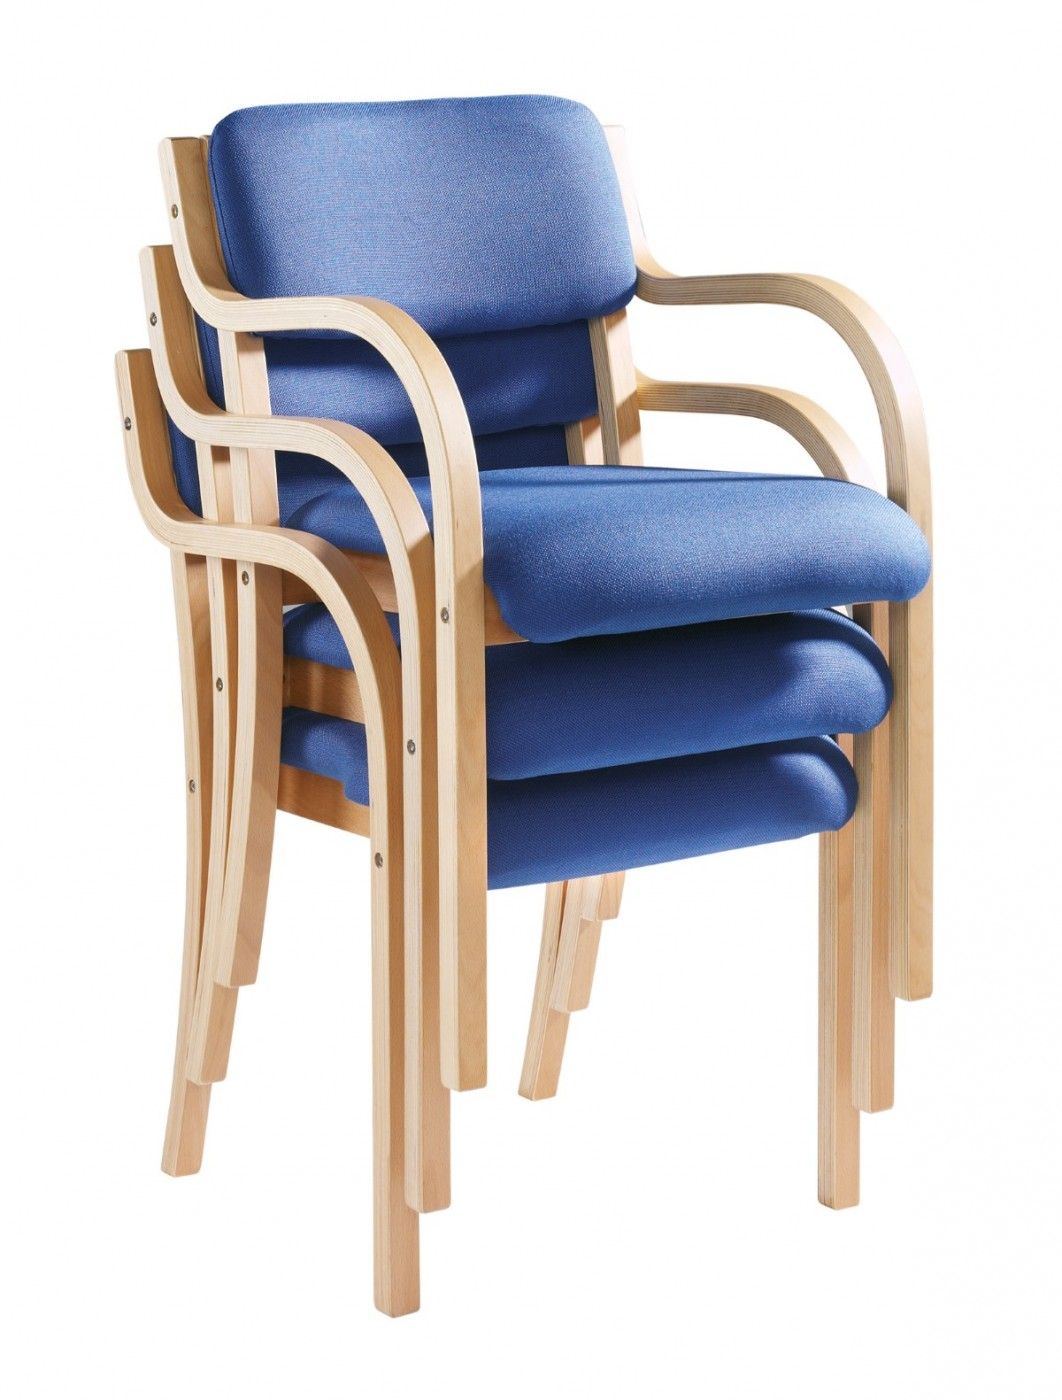 stackable chairs with arms chair covers to protect from cats reception seating prague stacking w pra50001